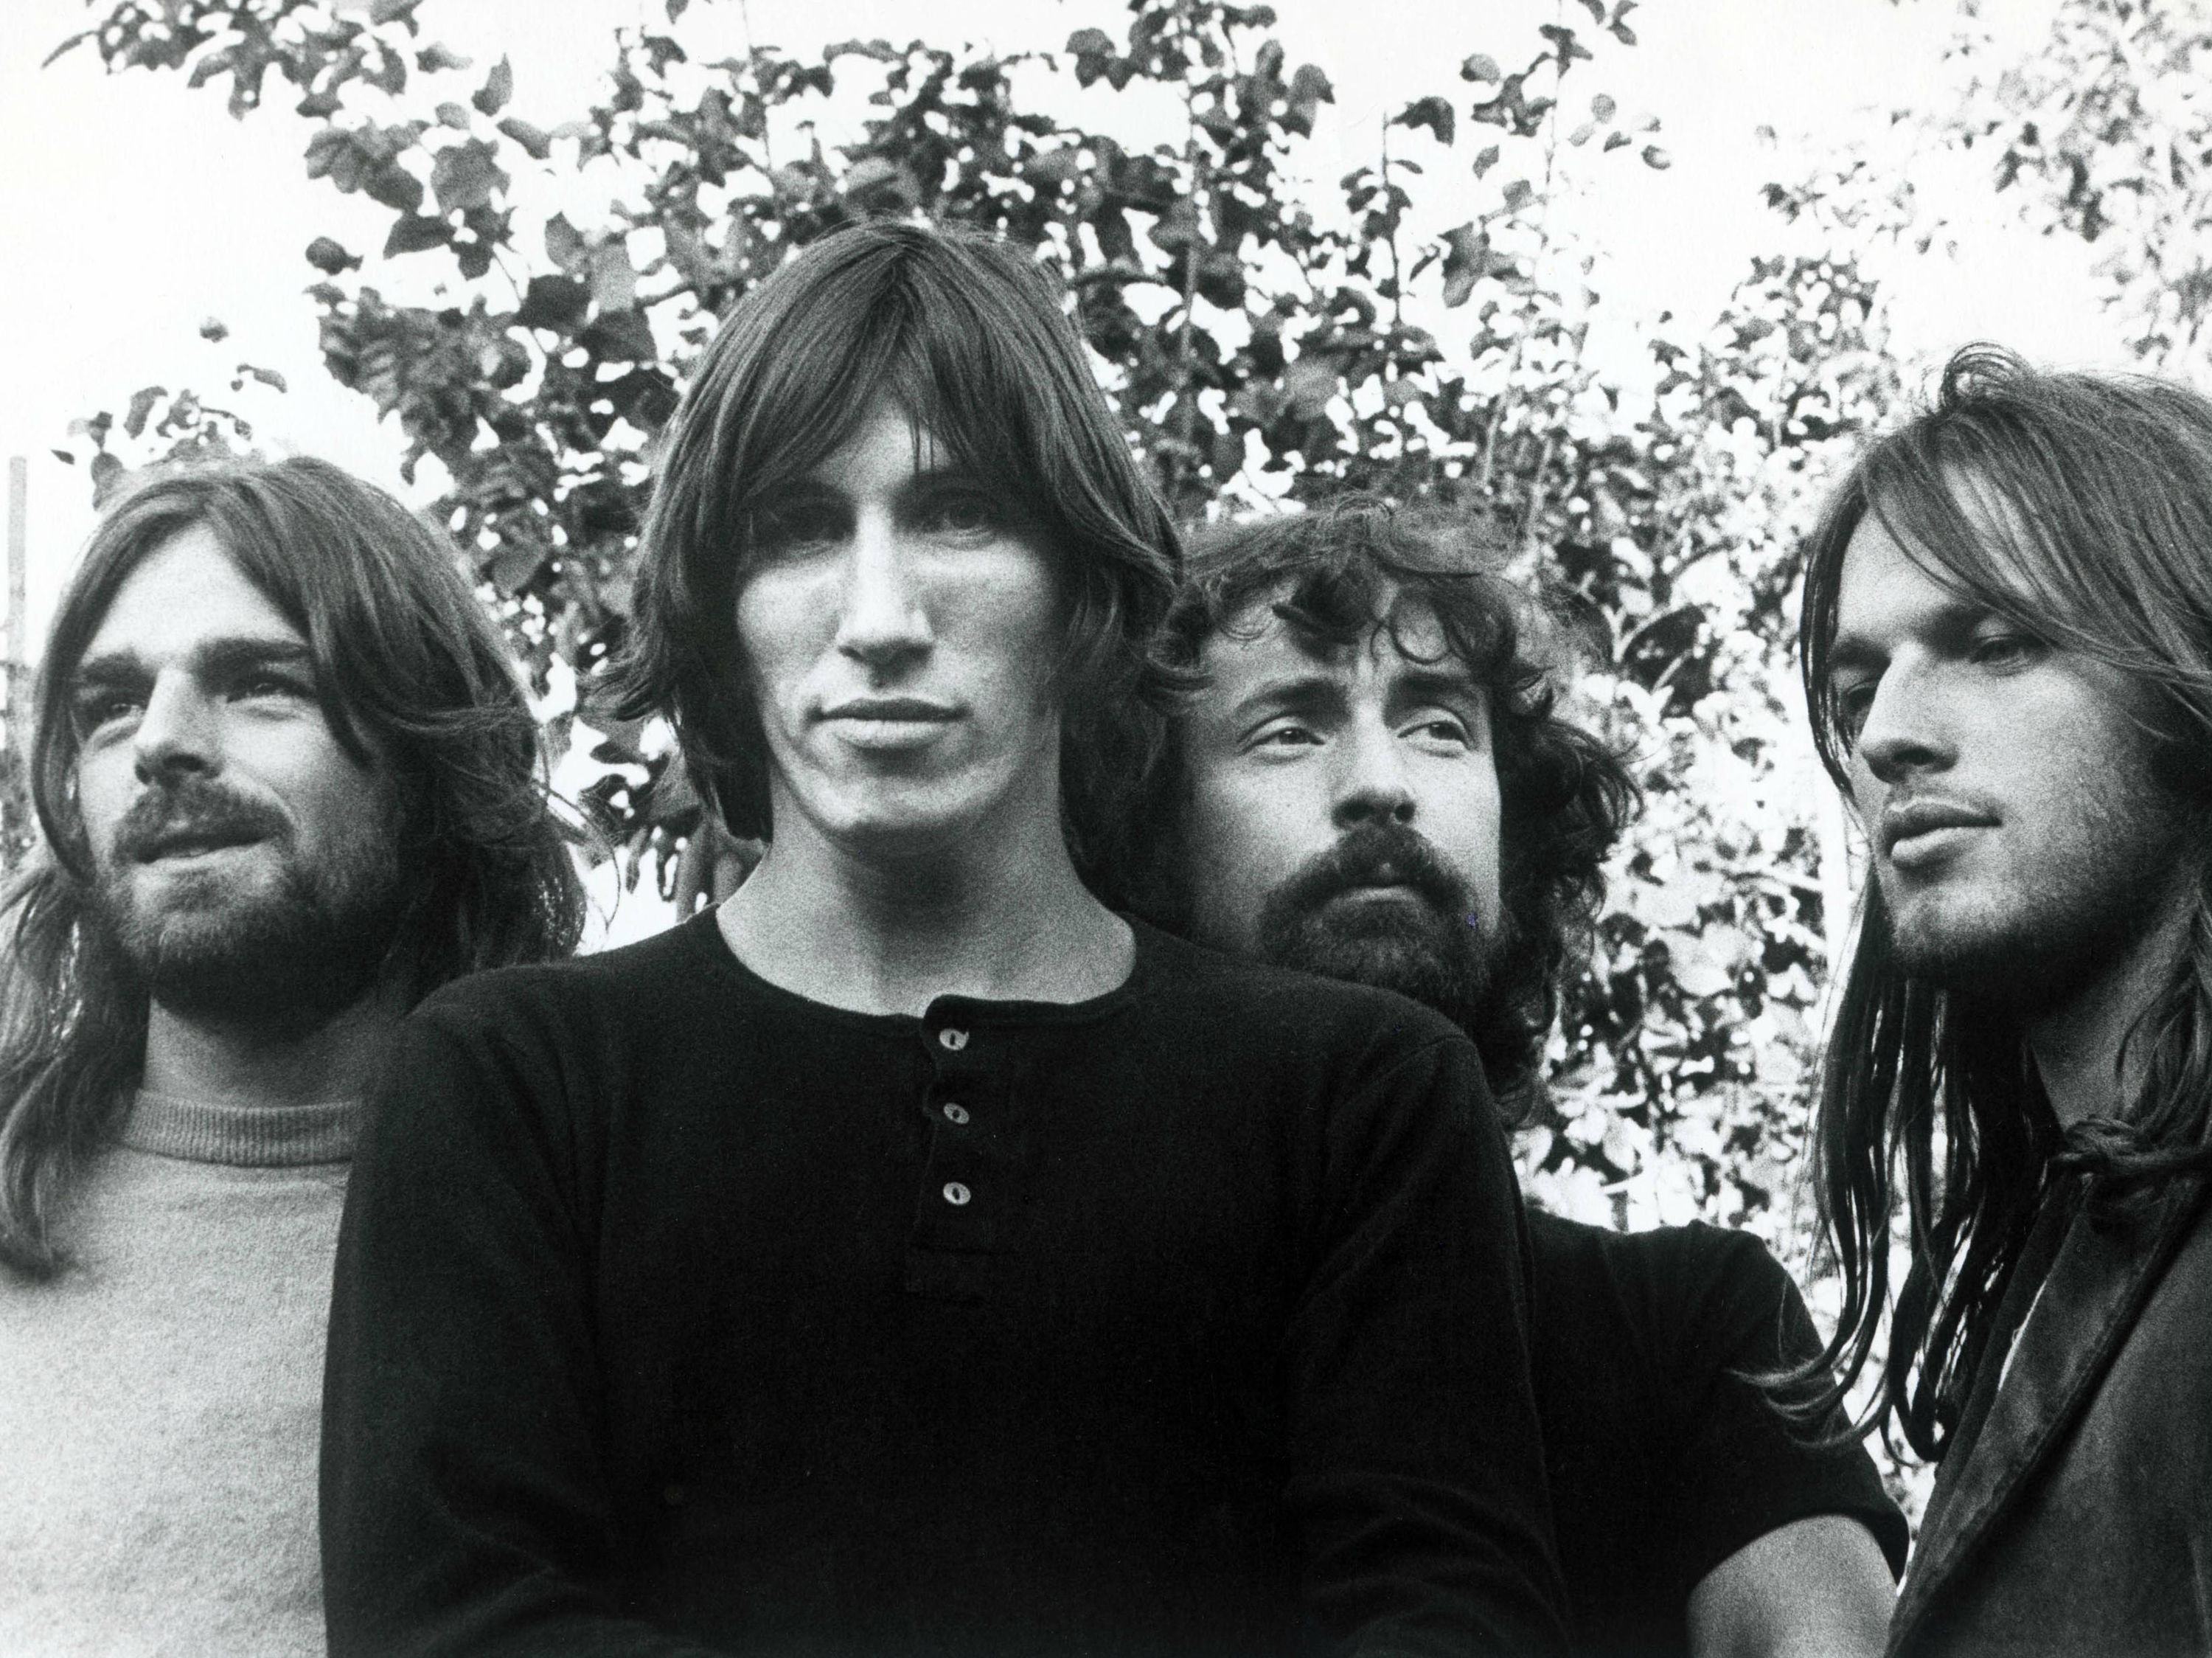 Pink Floyd have announced a new exhibition at the V&A Museum